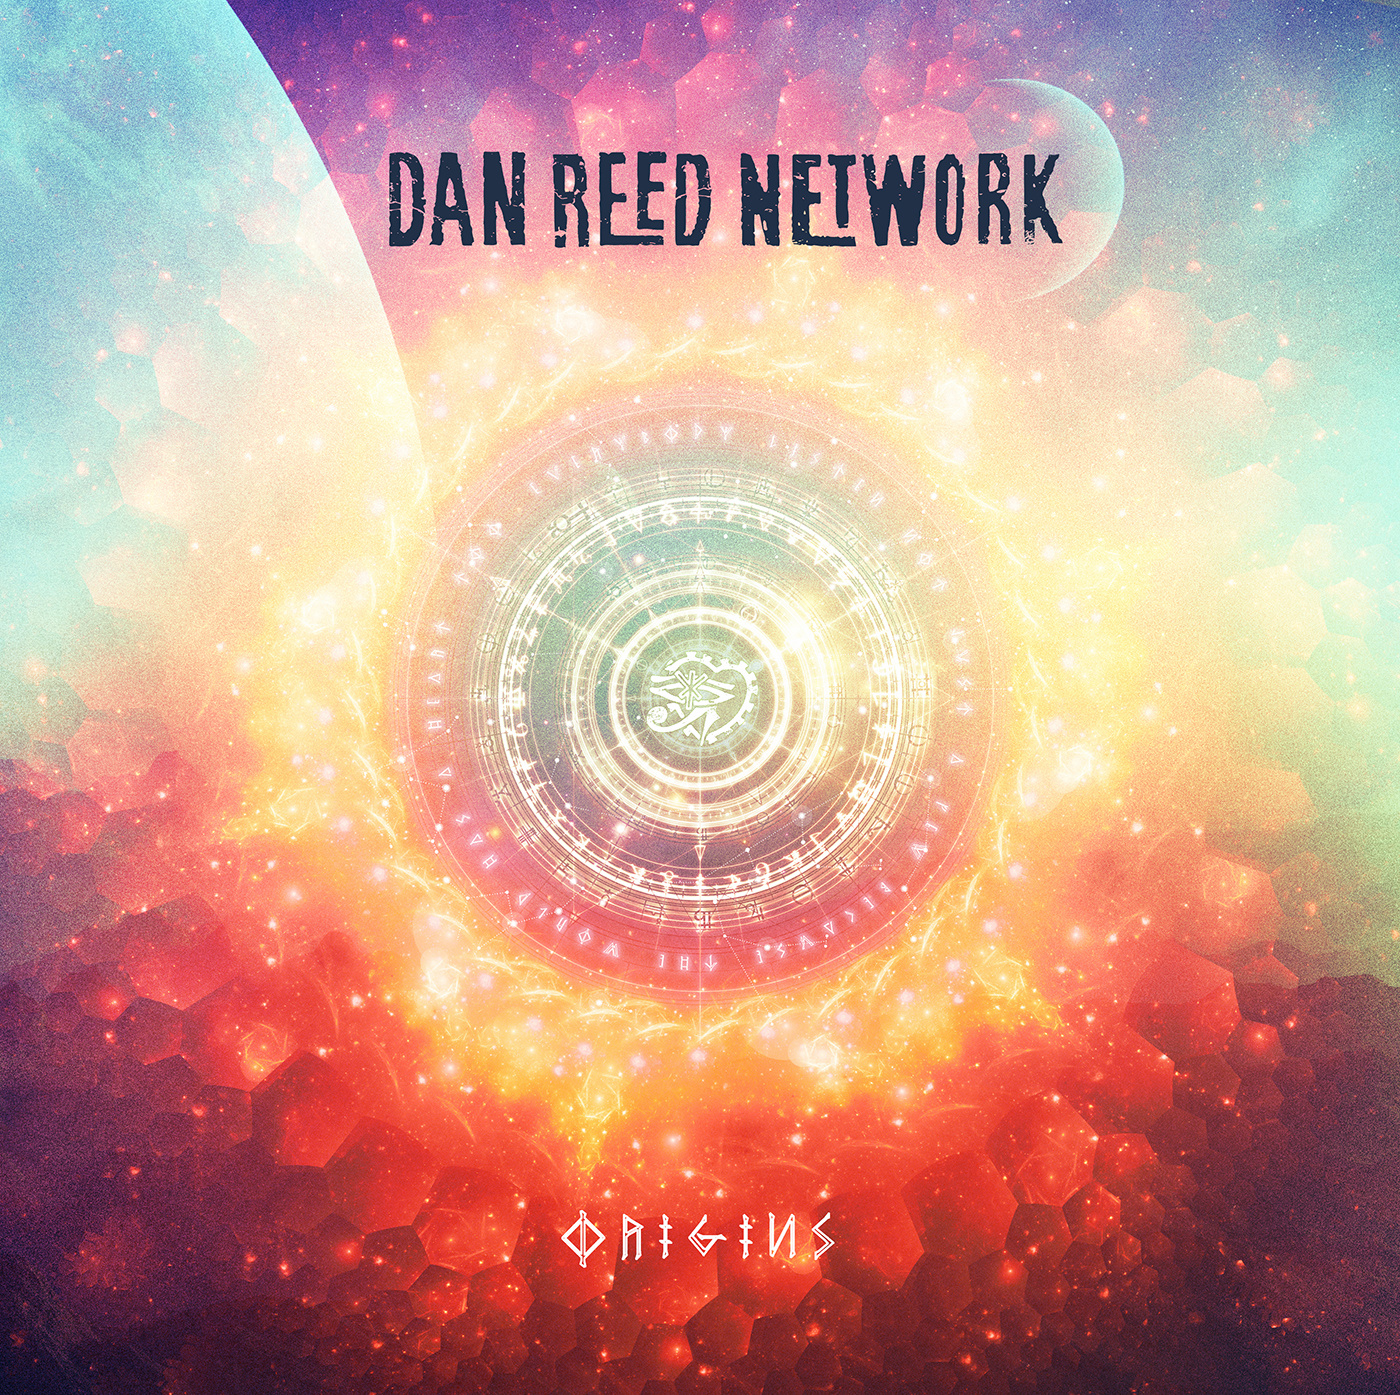 Album art for Dan Reed Network's 'Origins'.